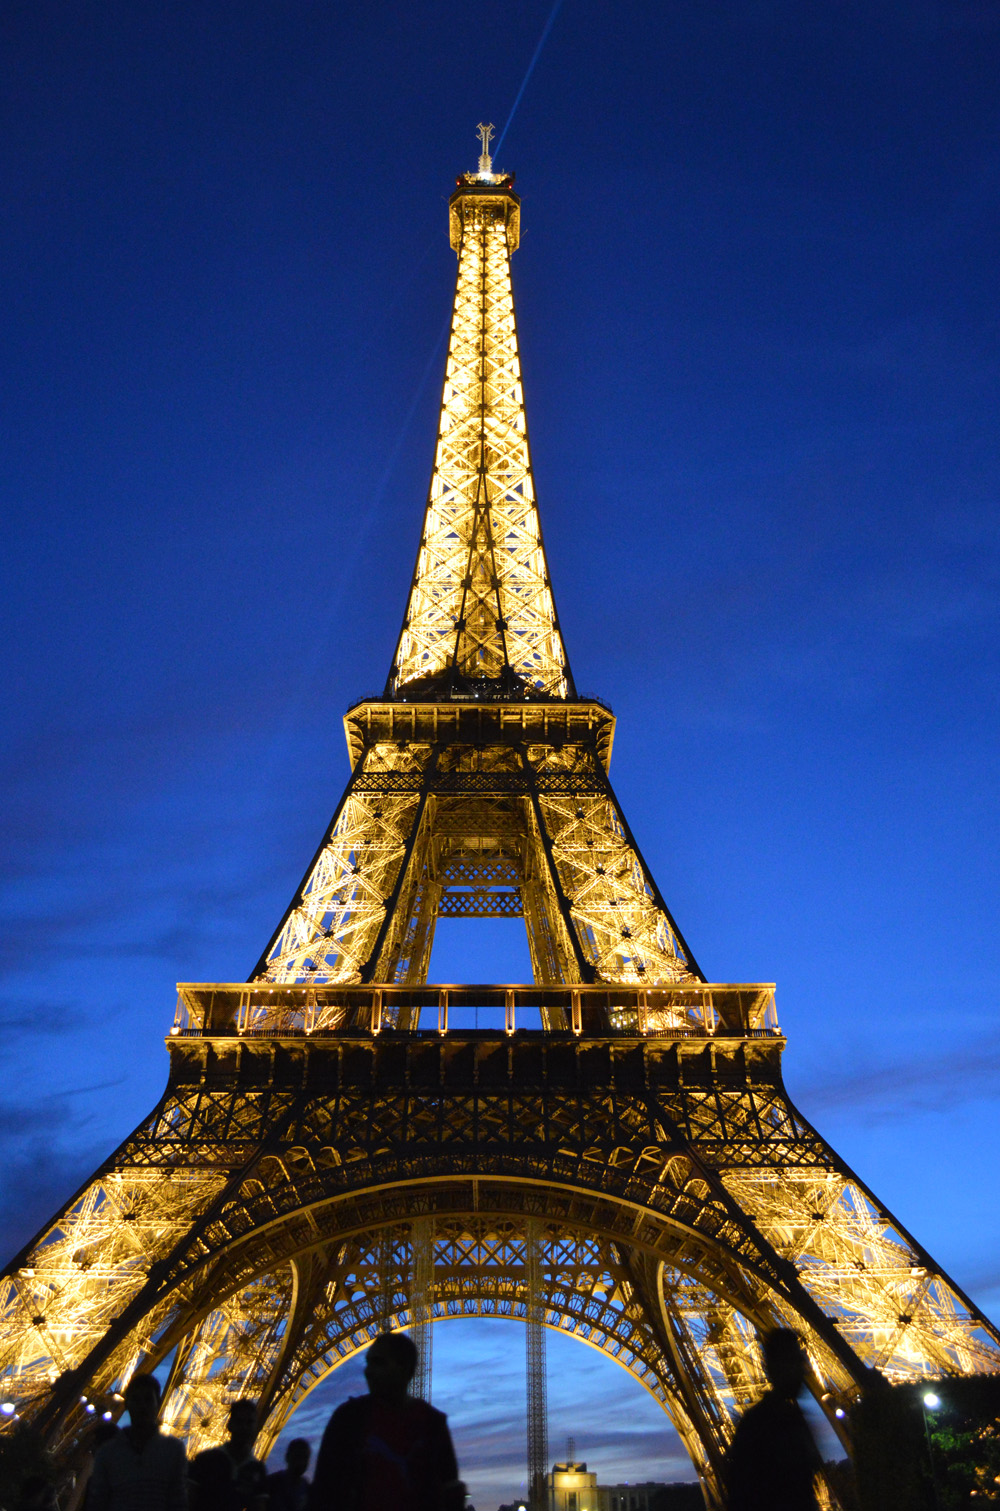 1-Eiffel-Tower-at-Night.jpg